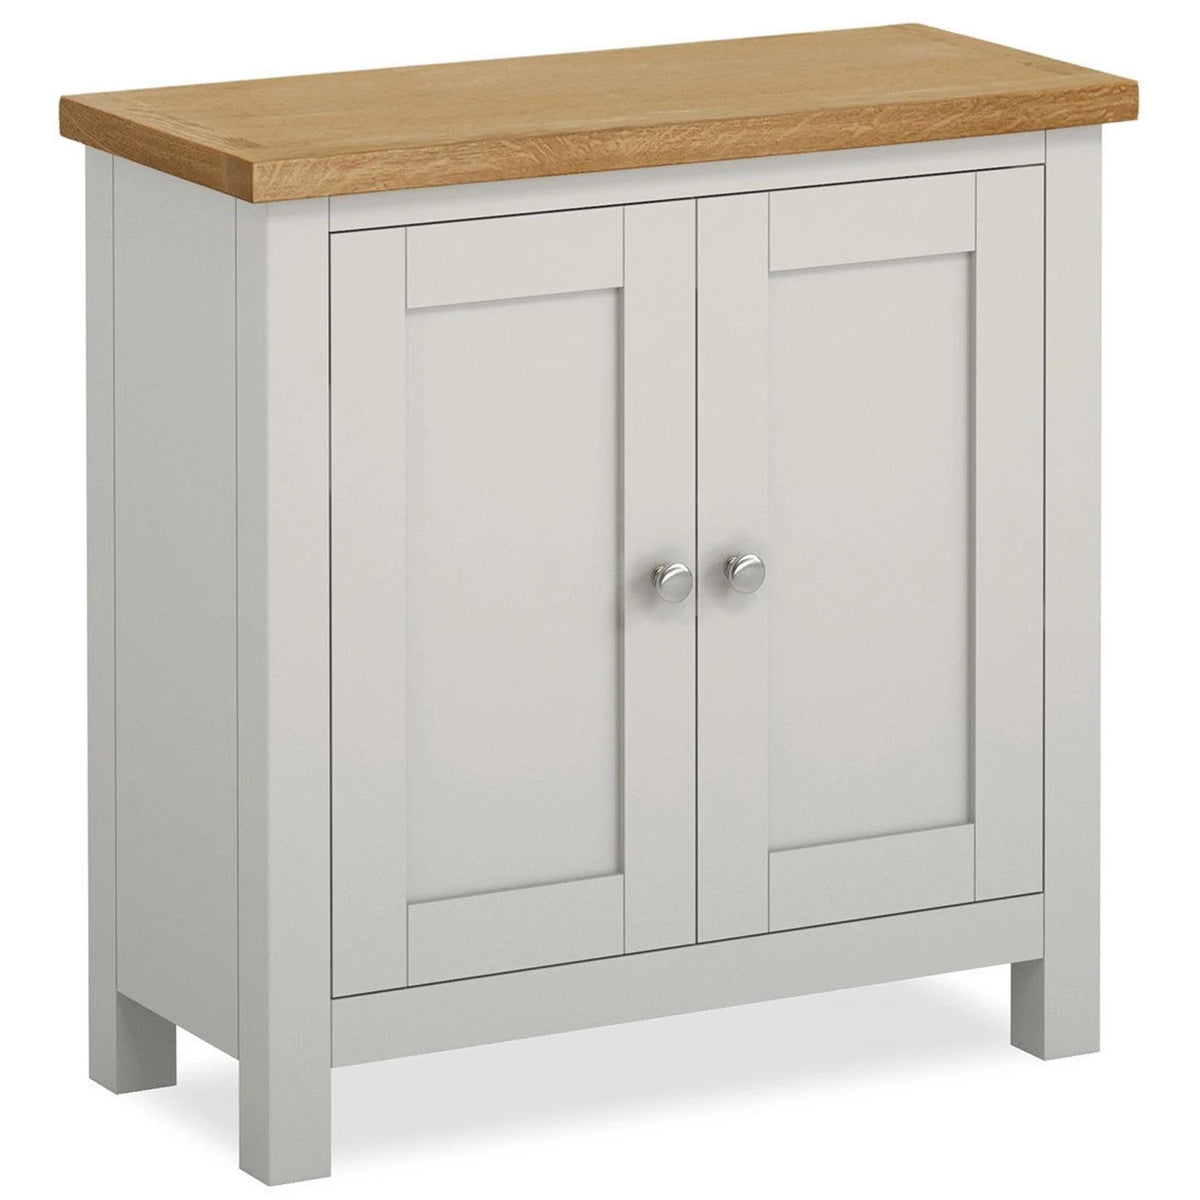 Farrow Grey Cupboard by Roseland Furniture